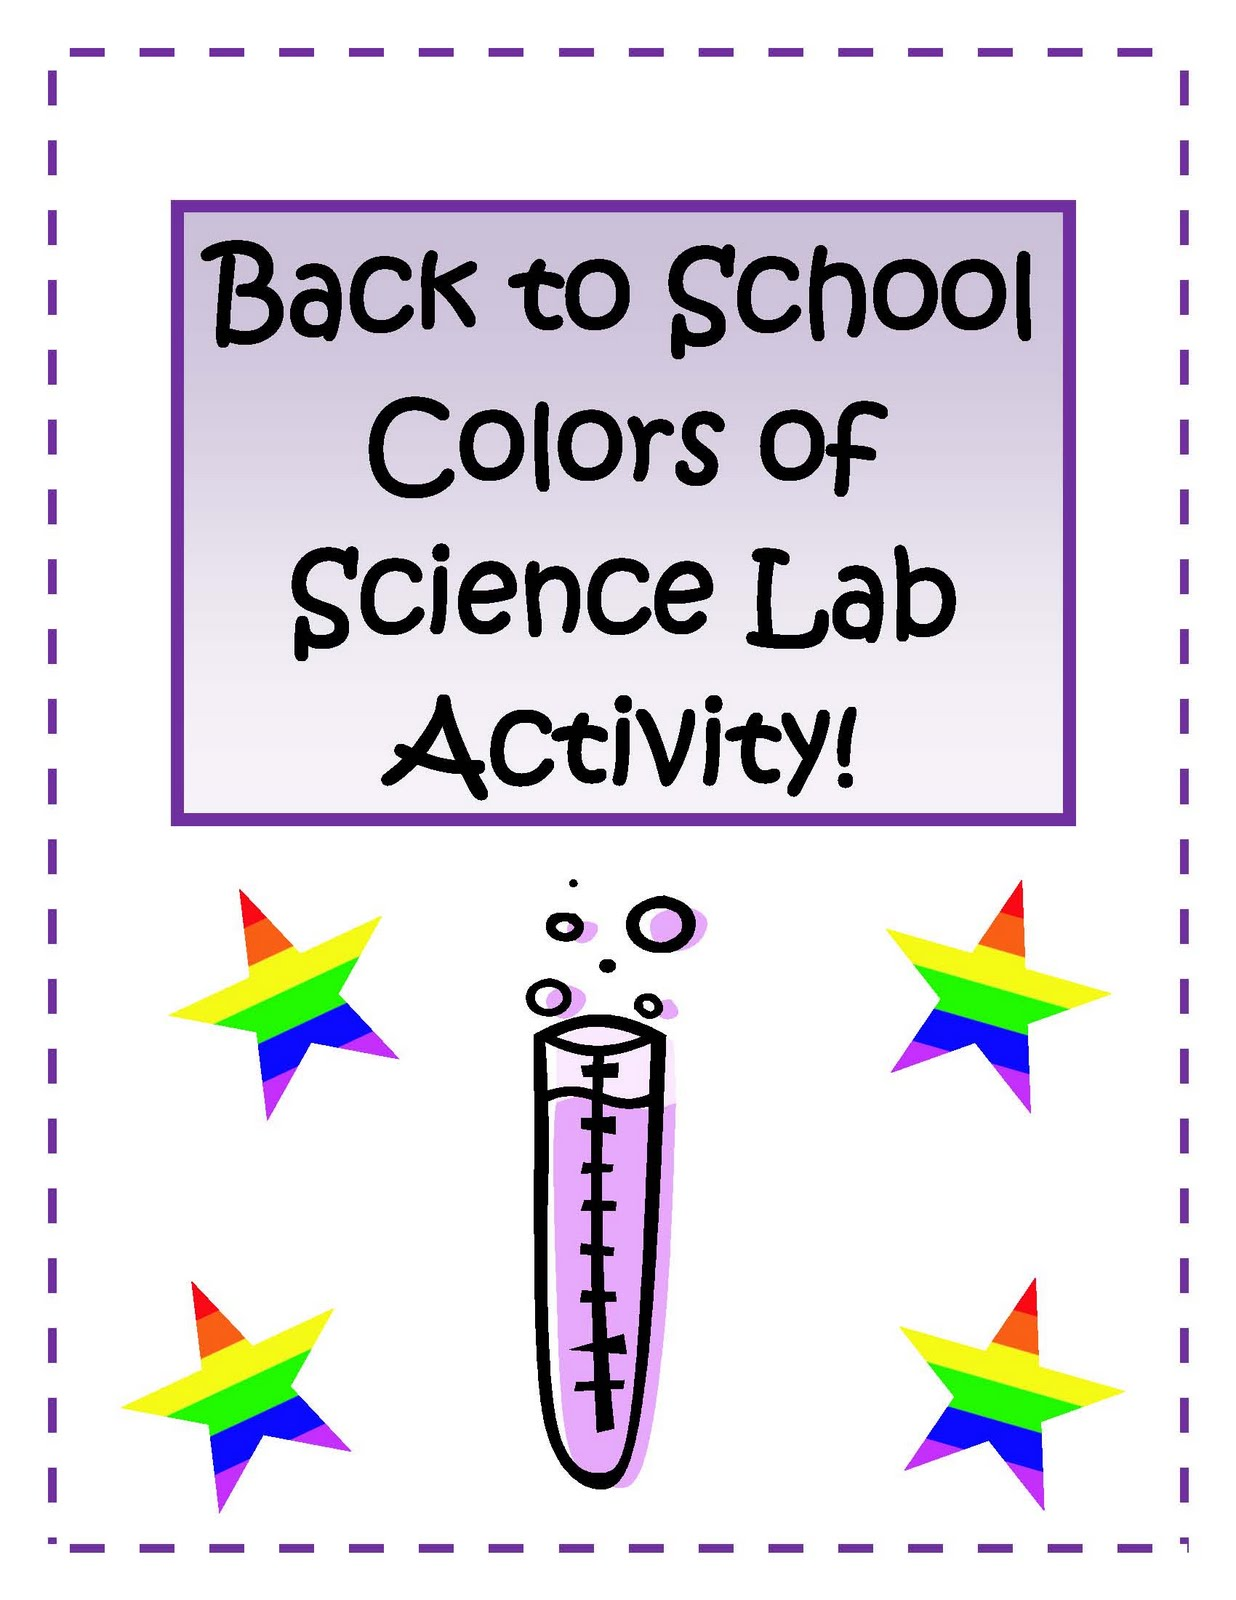 Made 4 Elementary And Made 4 Middle School Back To School Colors Of Science Lab Activity